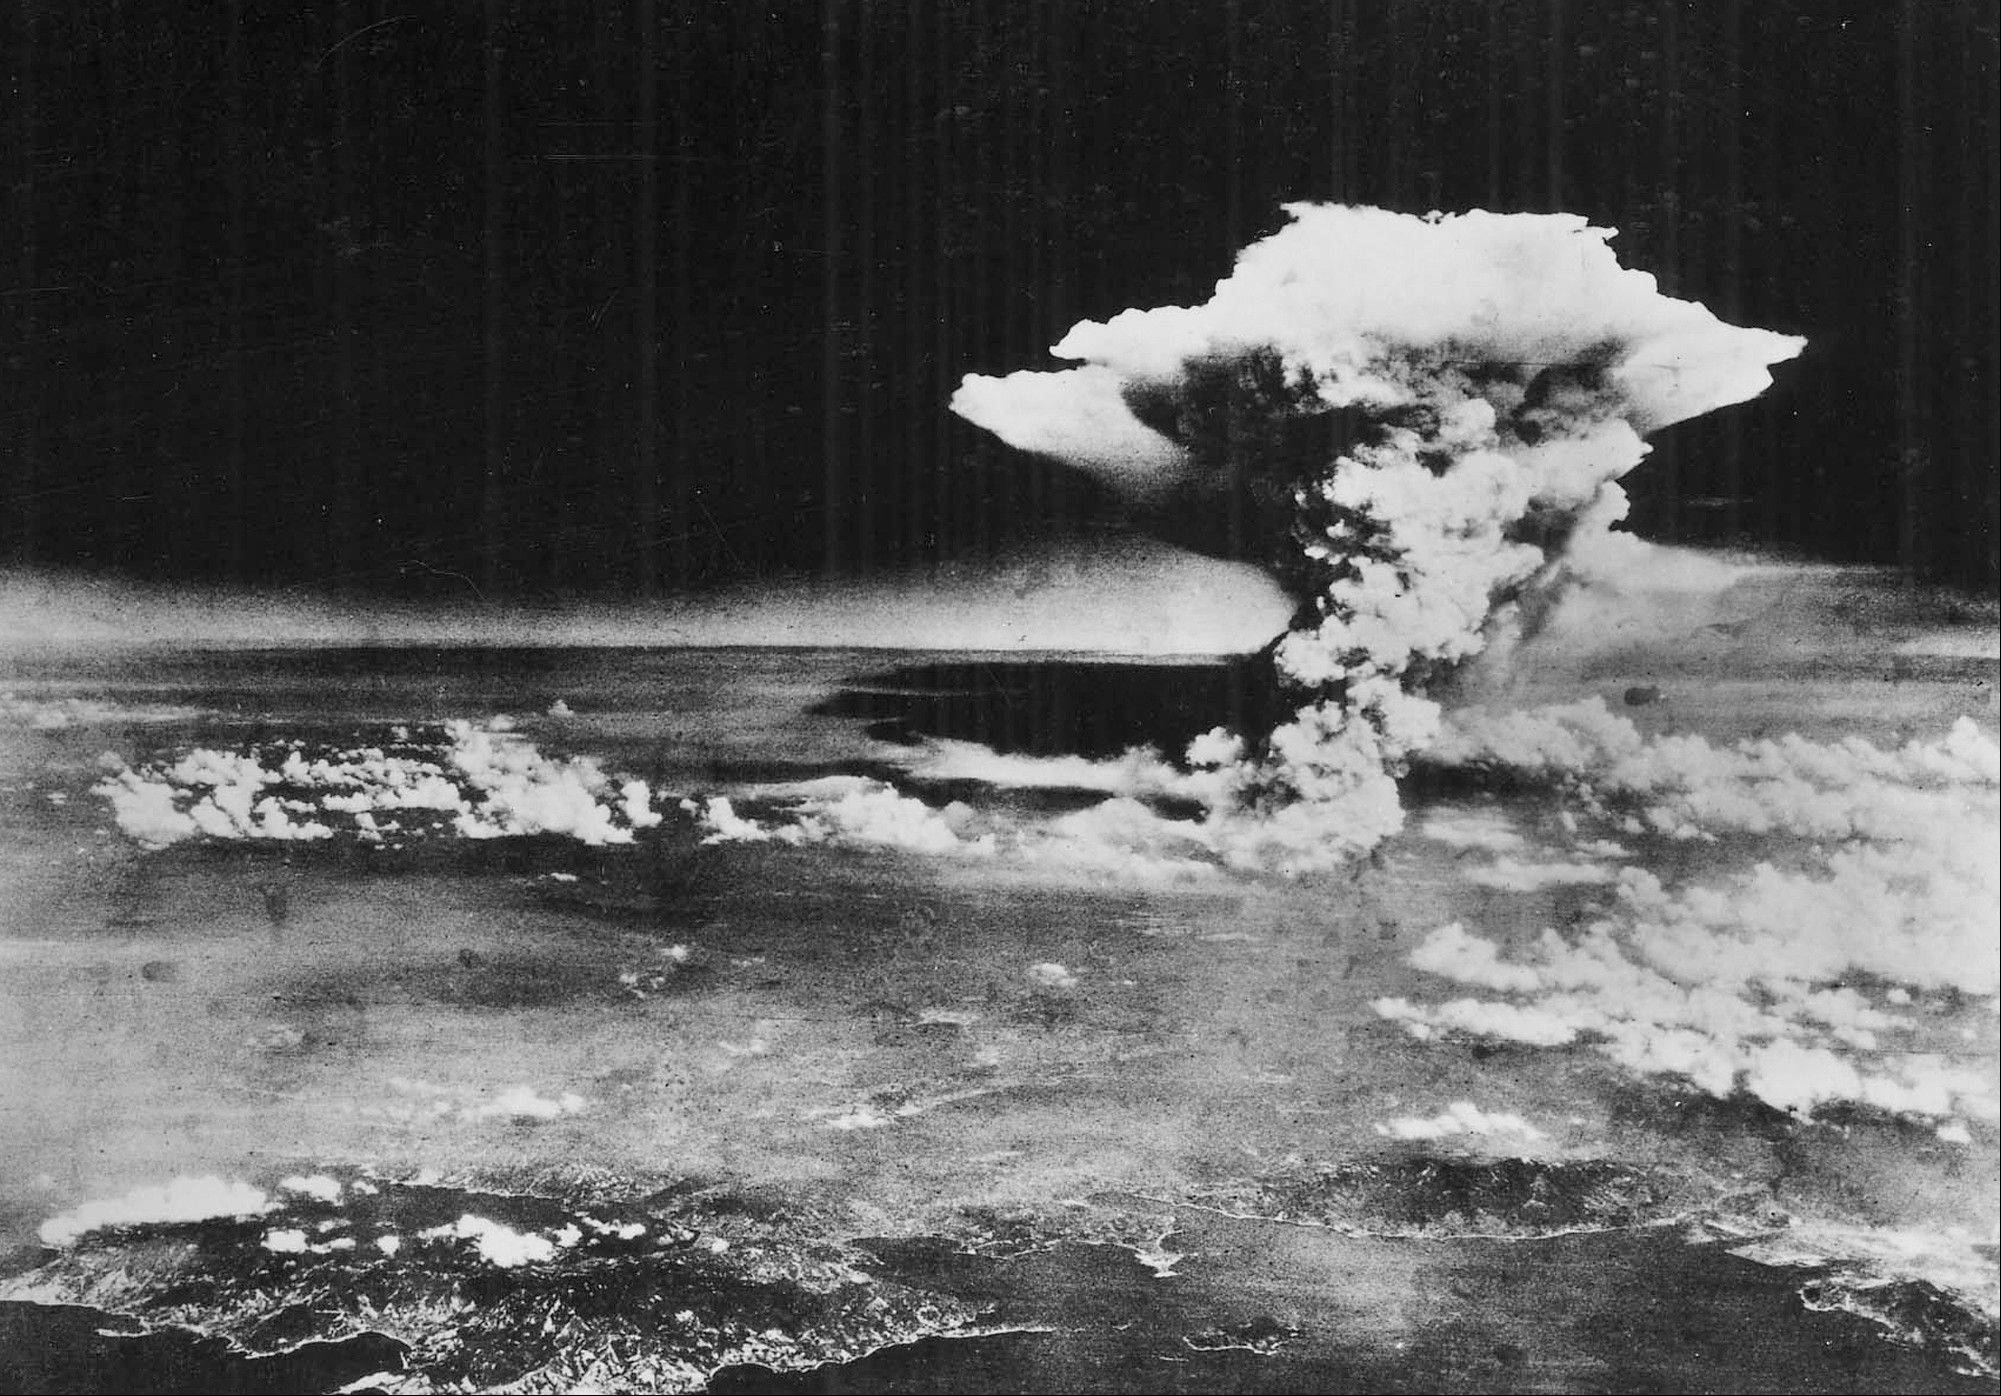 In this Aug. 6, 1945 file photo released by the U.S. Army, a mushroom cloud billows about one hour after an atomic bomb was detonated above Hiroshima, western Japan. Hiroshima will mark the 67th anniversary of the atomic bombing on Aug. 6, 2012. Clifton Truman Daniel, a grandson of former U.S. President Harry Truman, who ordered the atomic bombings of Japan during World War II, is in Hiroshima to attend a memorial service for the victims.